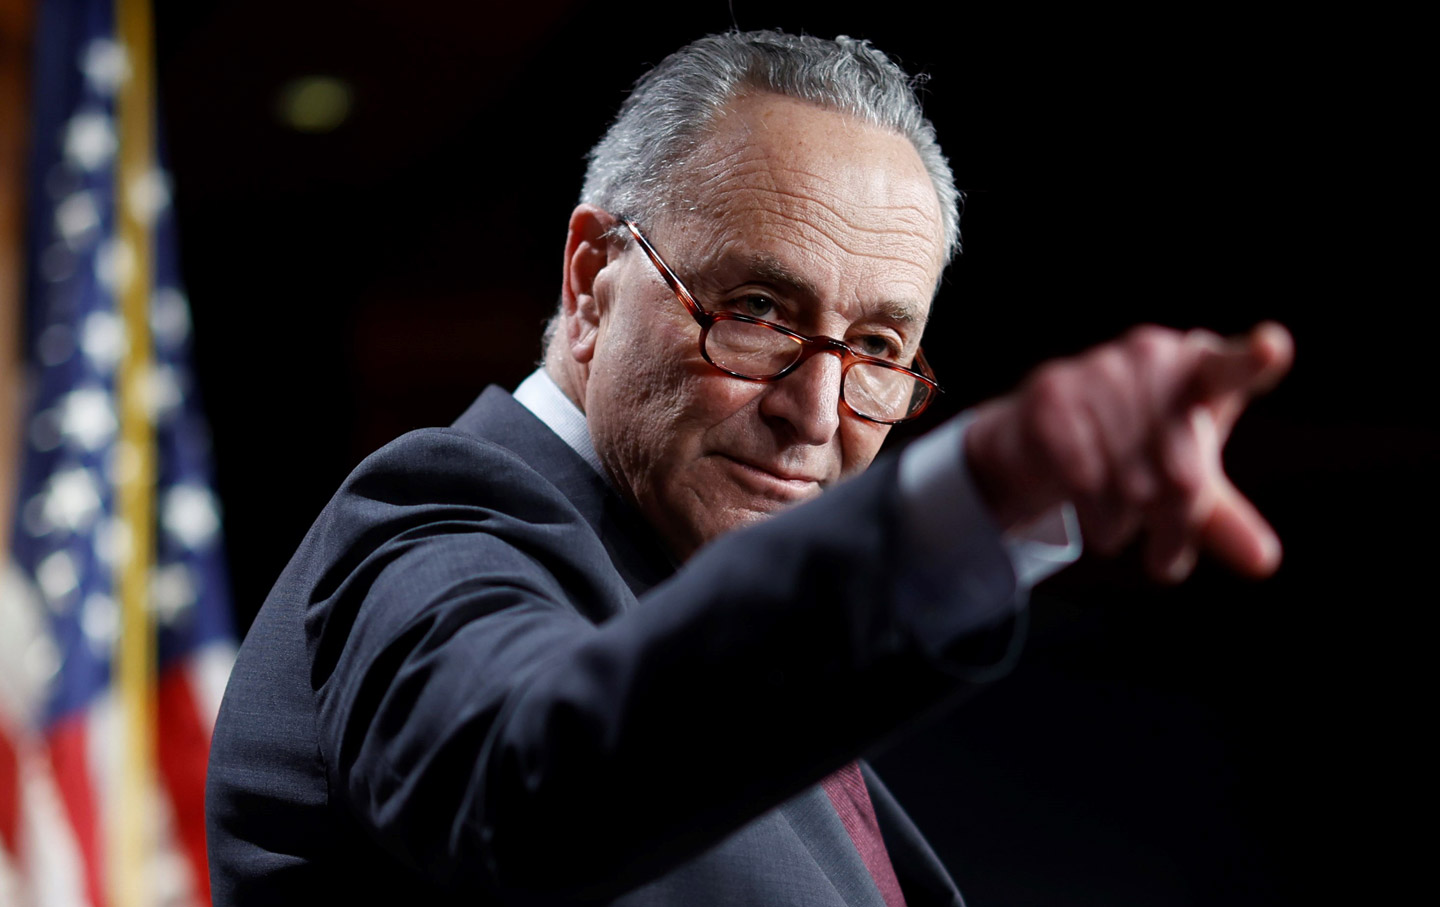 Washington Watch: Schumer Says the Senate Will Approve $250 Billion for Jobs of the Future